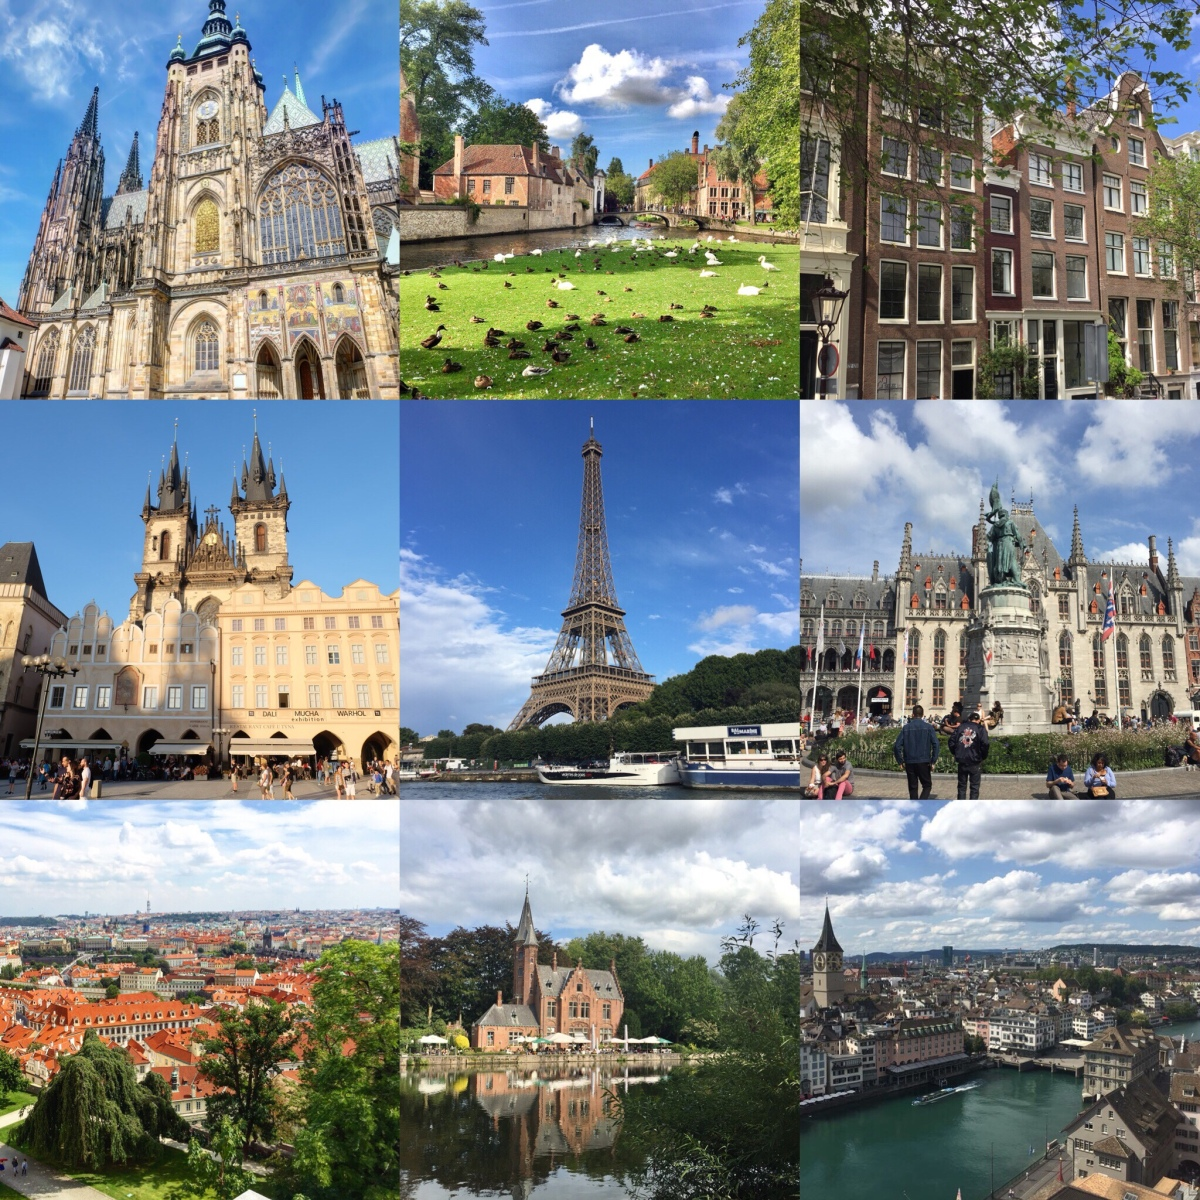 2017 European Trip Itinerary (Our Honeymoon)